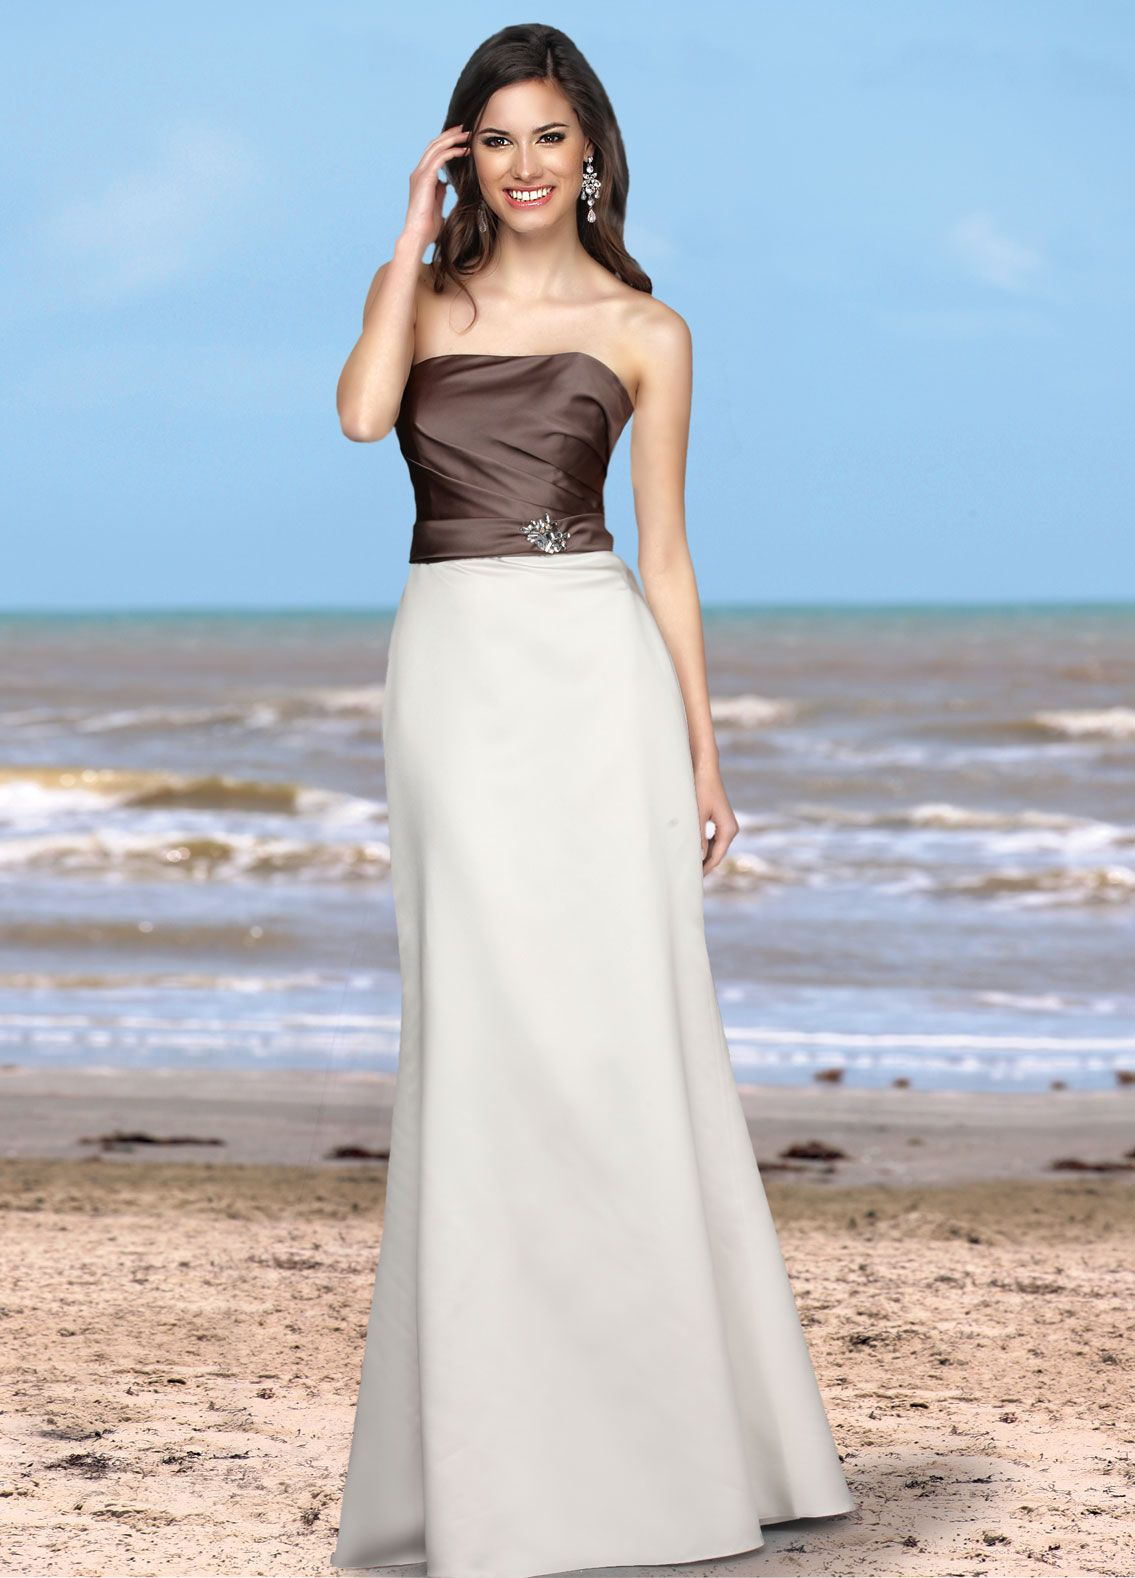 Can't decide between two dress colors? Well, this two-tone Davinci piece may be the dress you've been looking for!